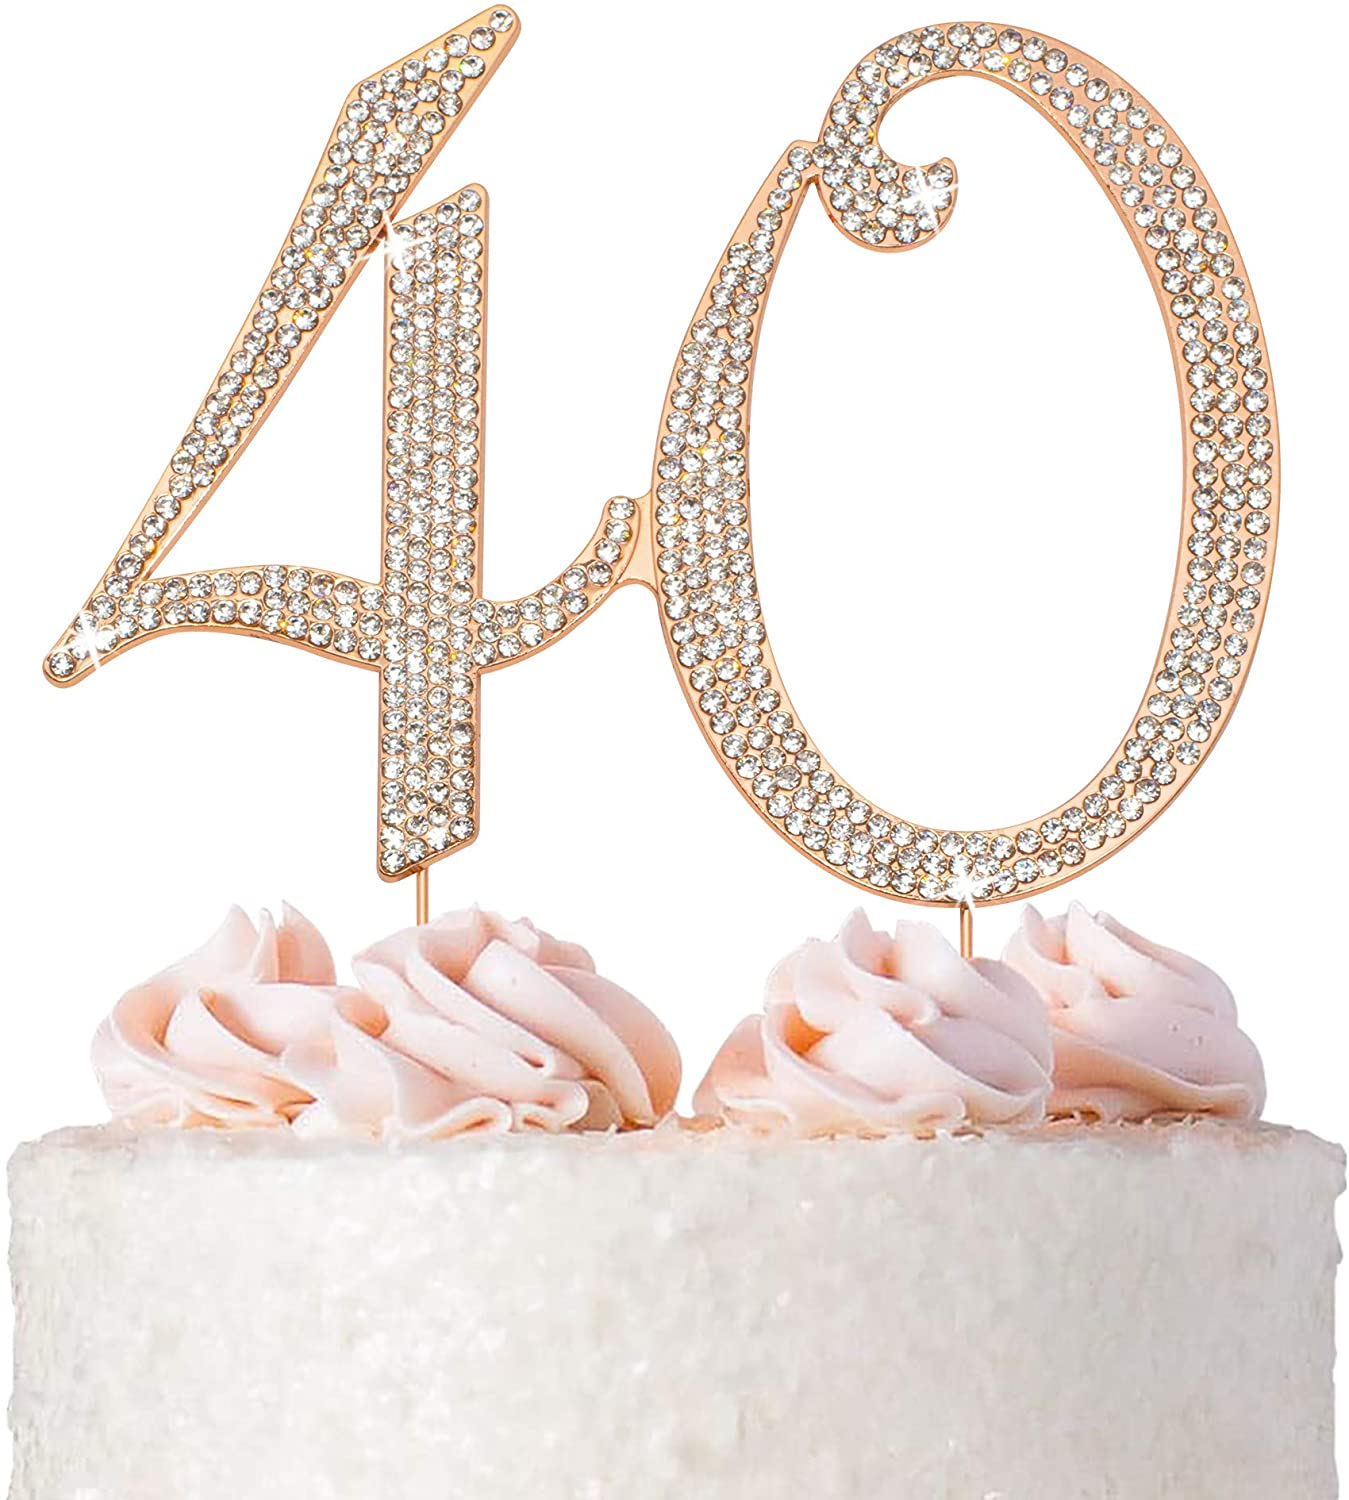 40 Cake Topper - Premium Rose Gold Metal - 40th Birthday or Anniversary Party Sparkly Rhinestone Decoration Makes a Great Centerpiece - Now Protected in a Box